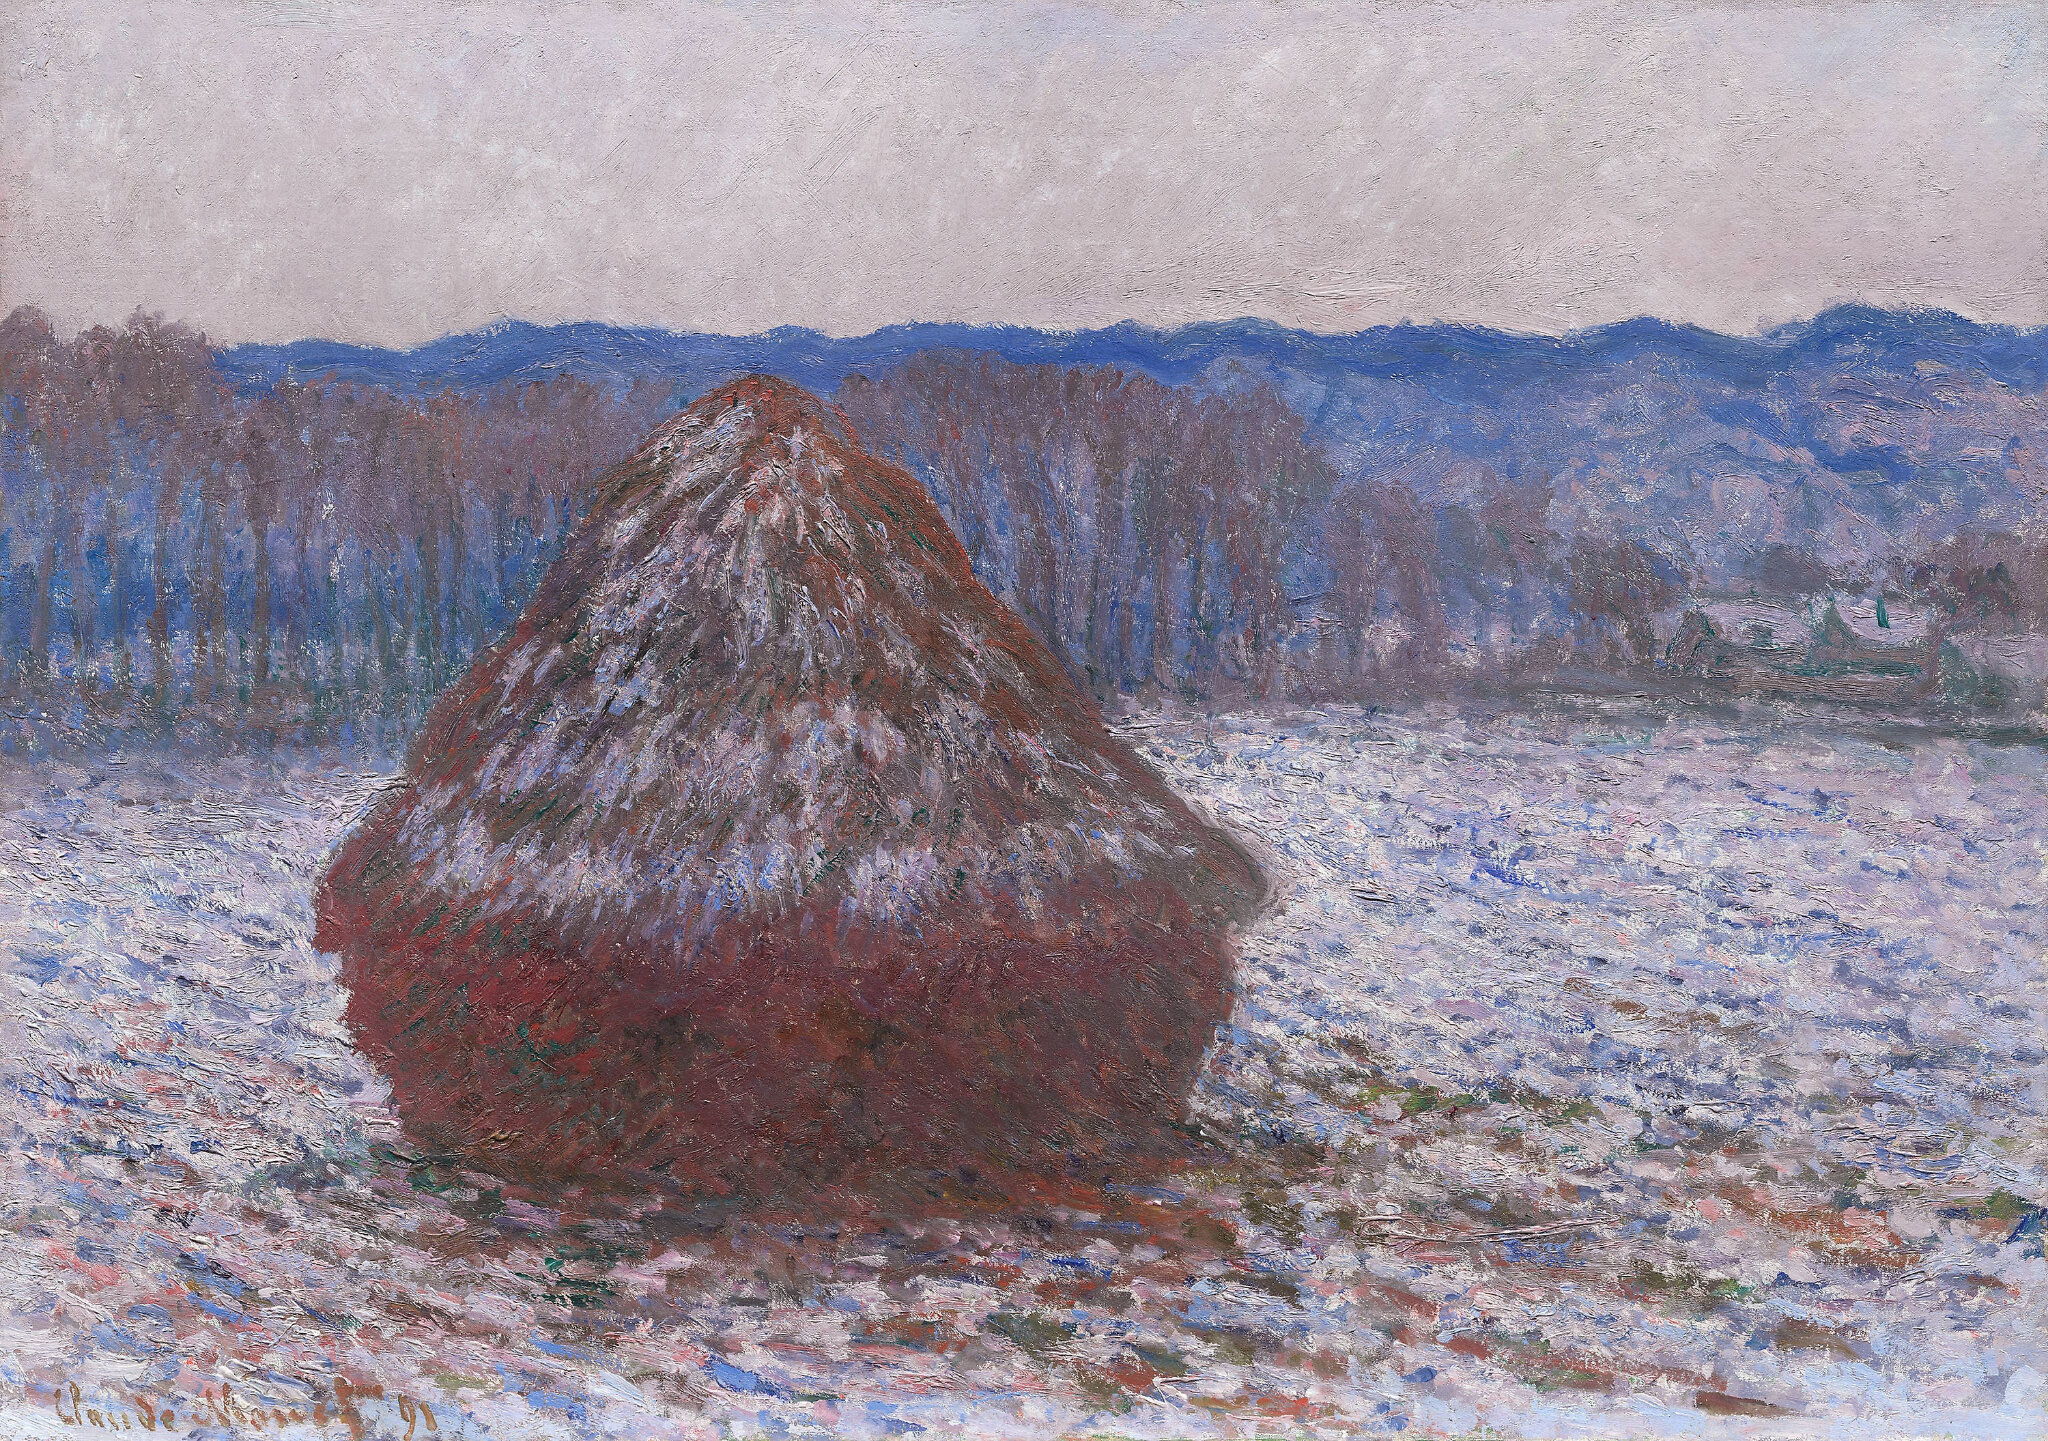 One of the finest examples of Claude Monet's Haystacks series estimated to  sell for in excess of $55 Million - Alain.R.Truong